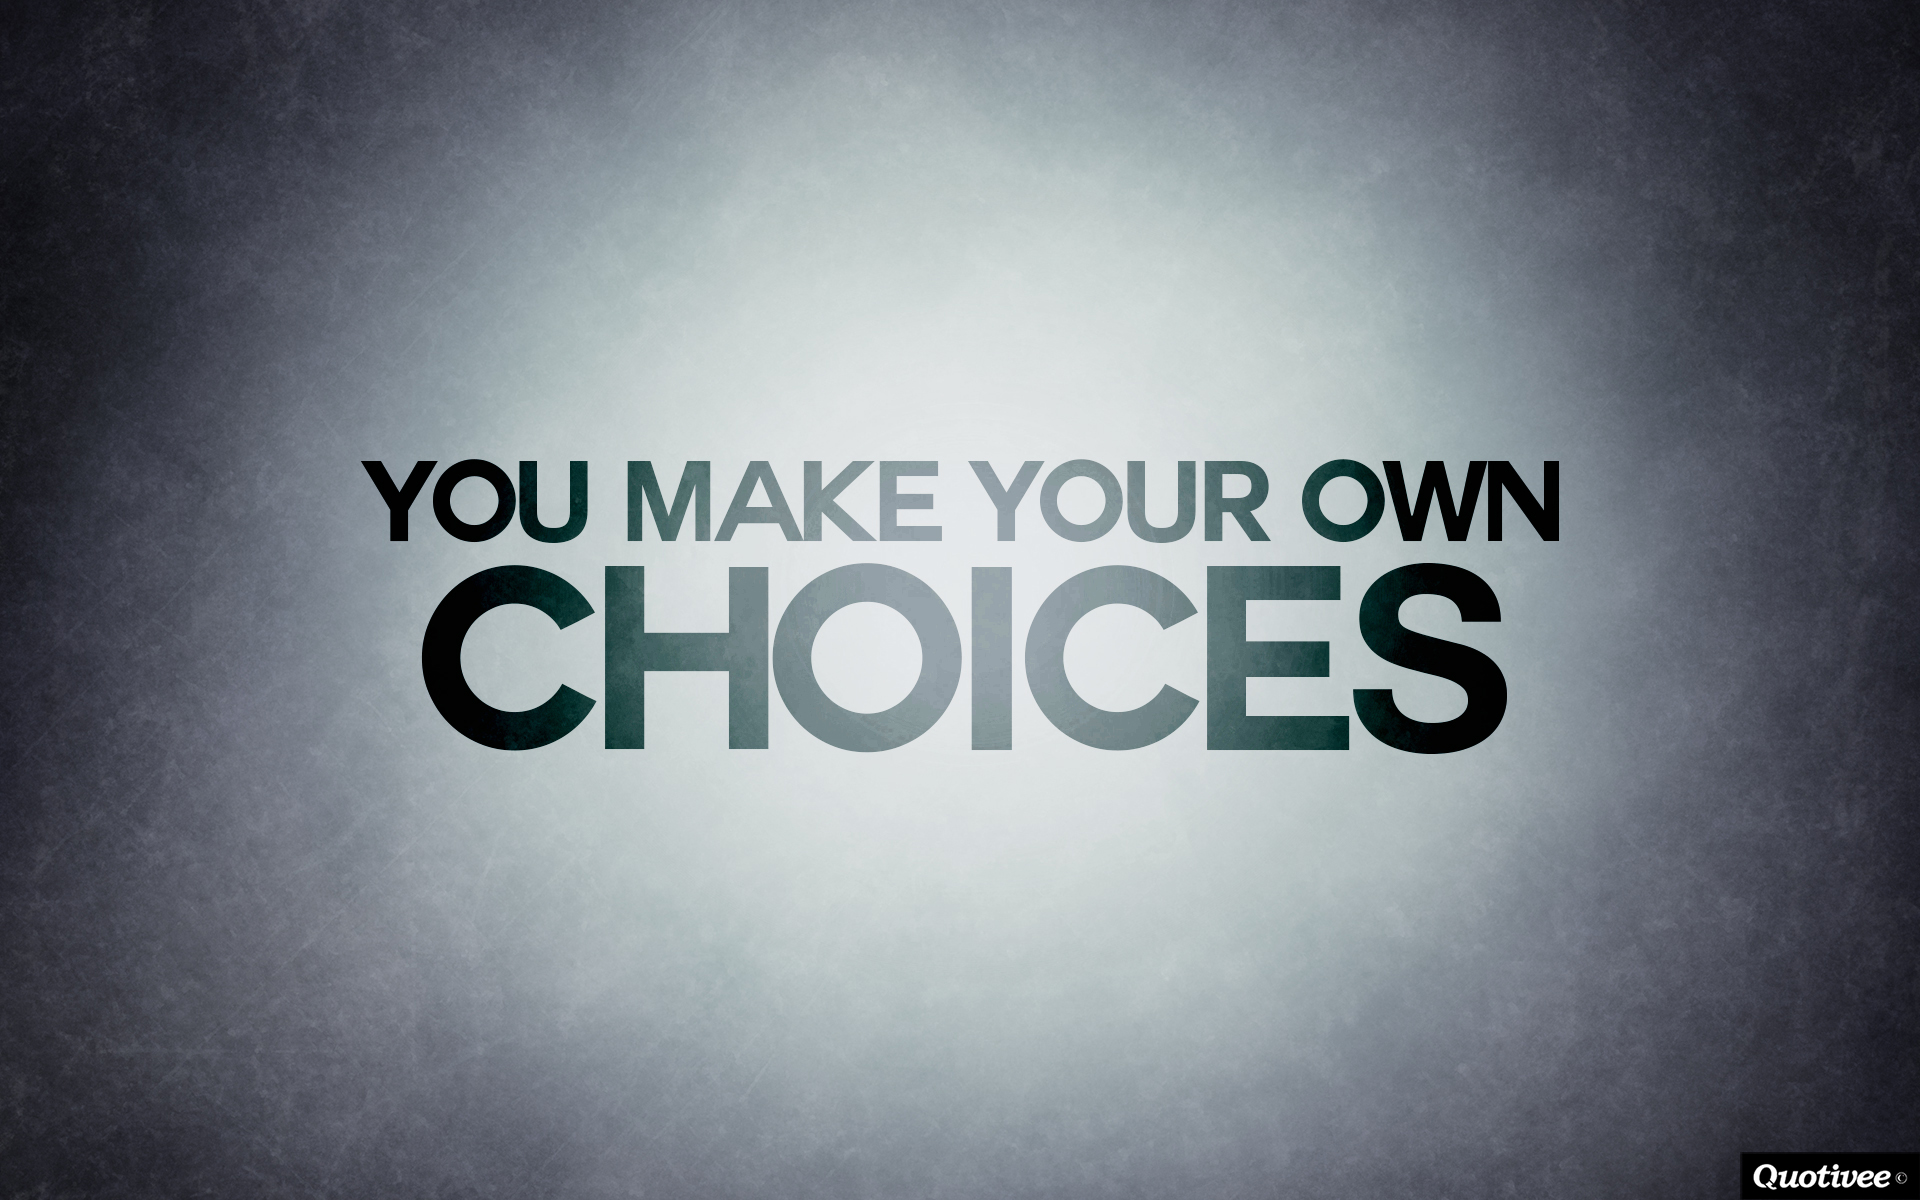 You Make Your Own Choices   Inspirational Quotes Quotivee 1920x1200